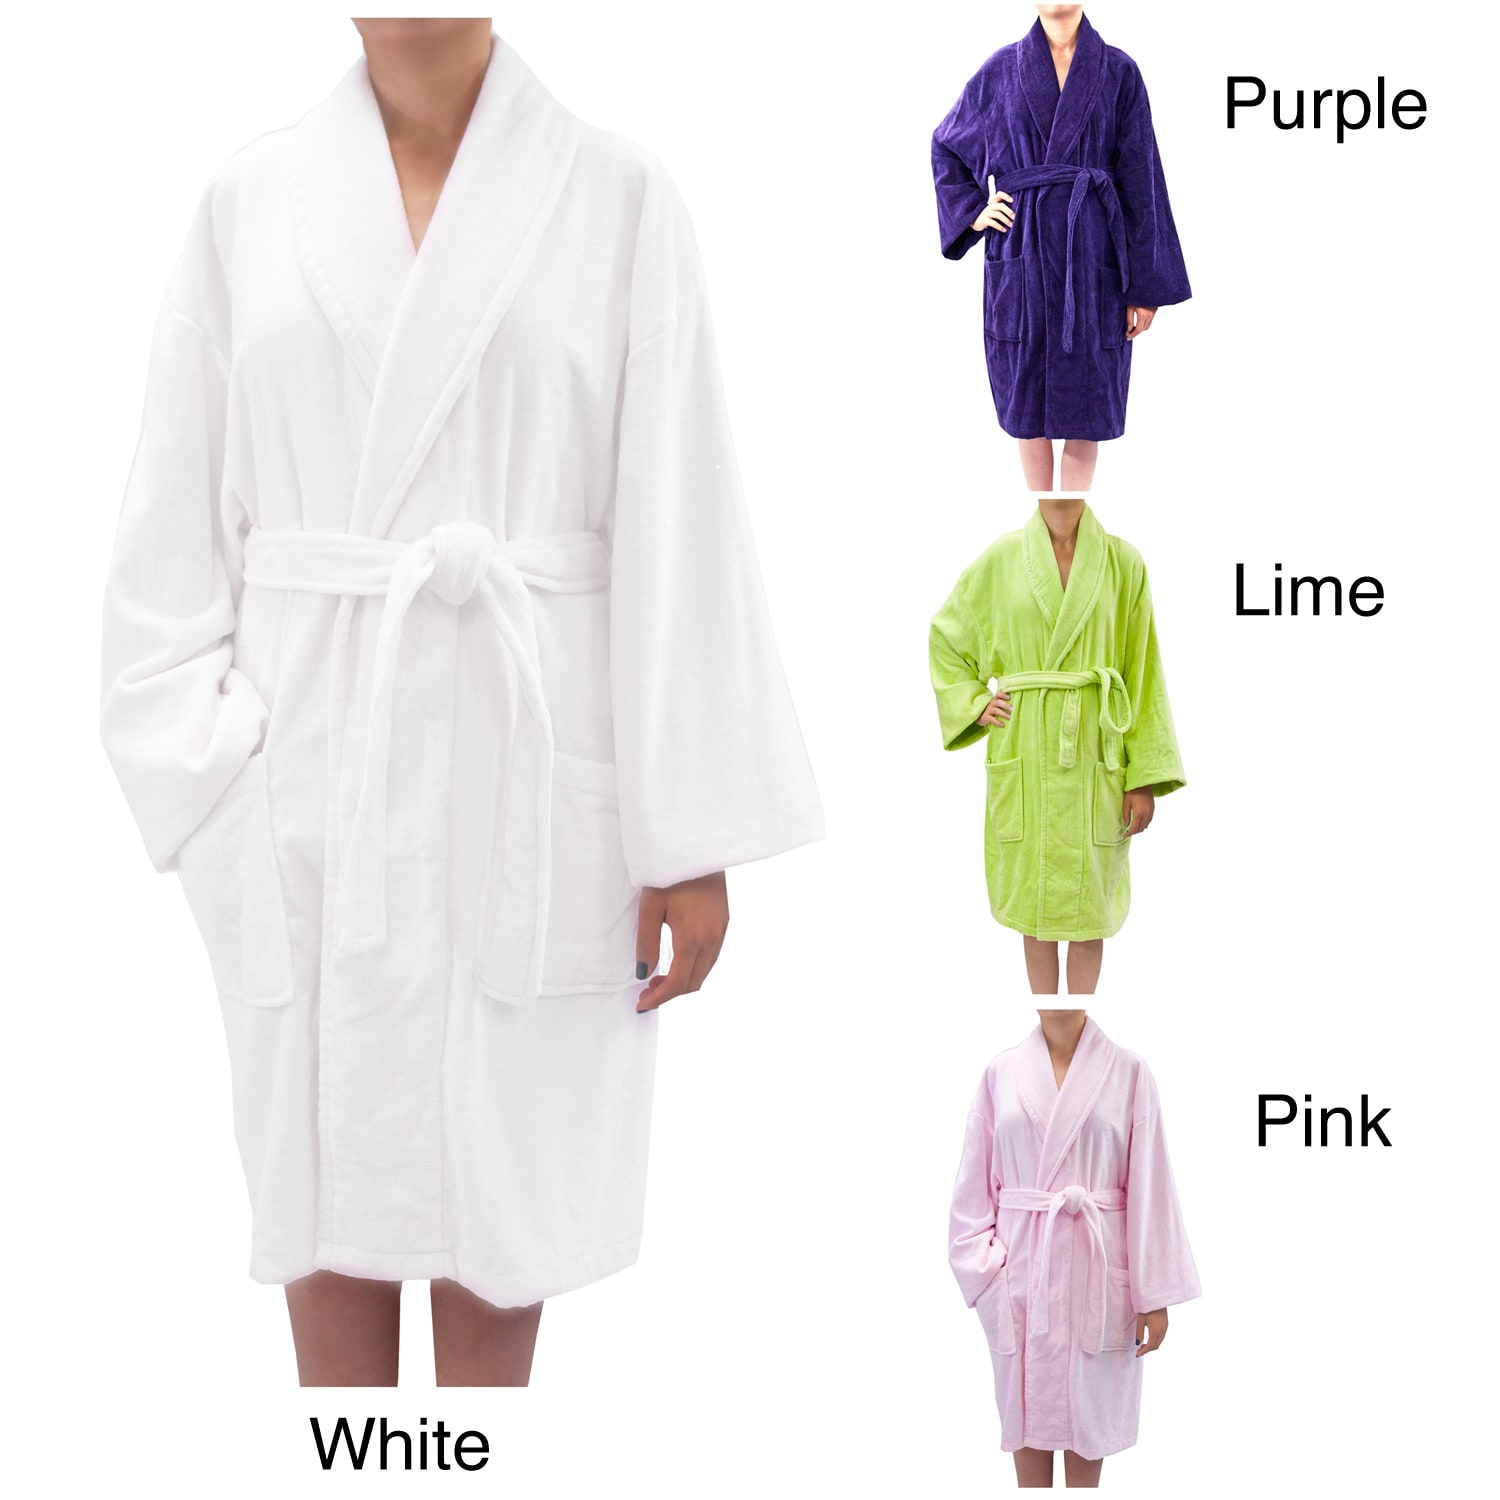 Leisureland Women's Luxury Cotton Terry Velour Robe at Sears.com